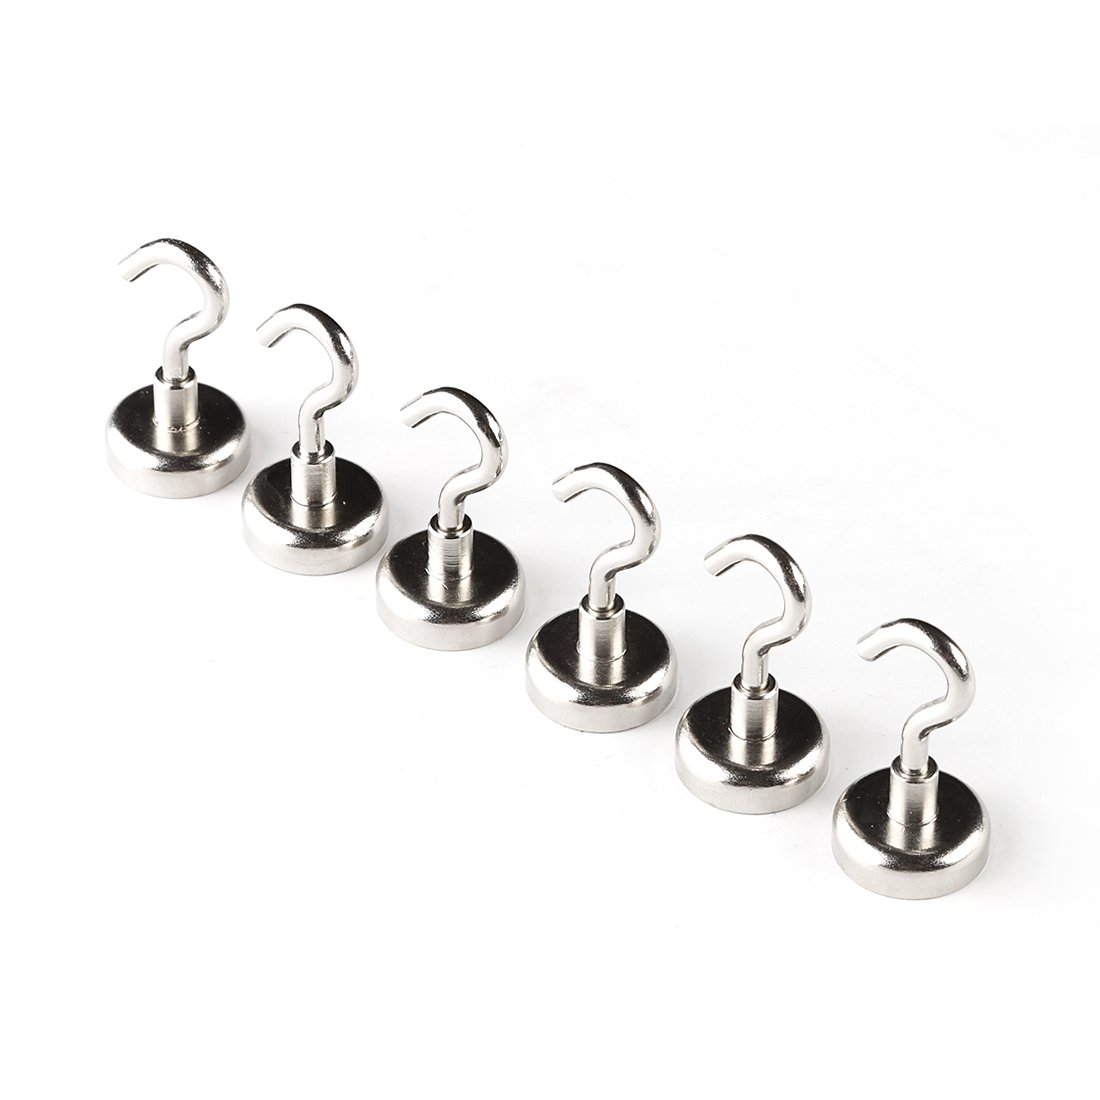 JLER 25 Pound Tension Magnetic Hooks Powerful Neodymium Magnet Mount Hook as Keys holder towels or tools keeper Declutter Your Space 3 pack AX-AY-ABHI-121269